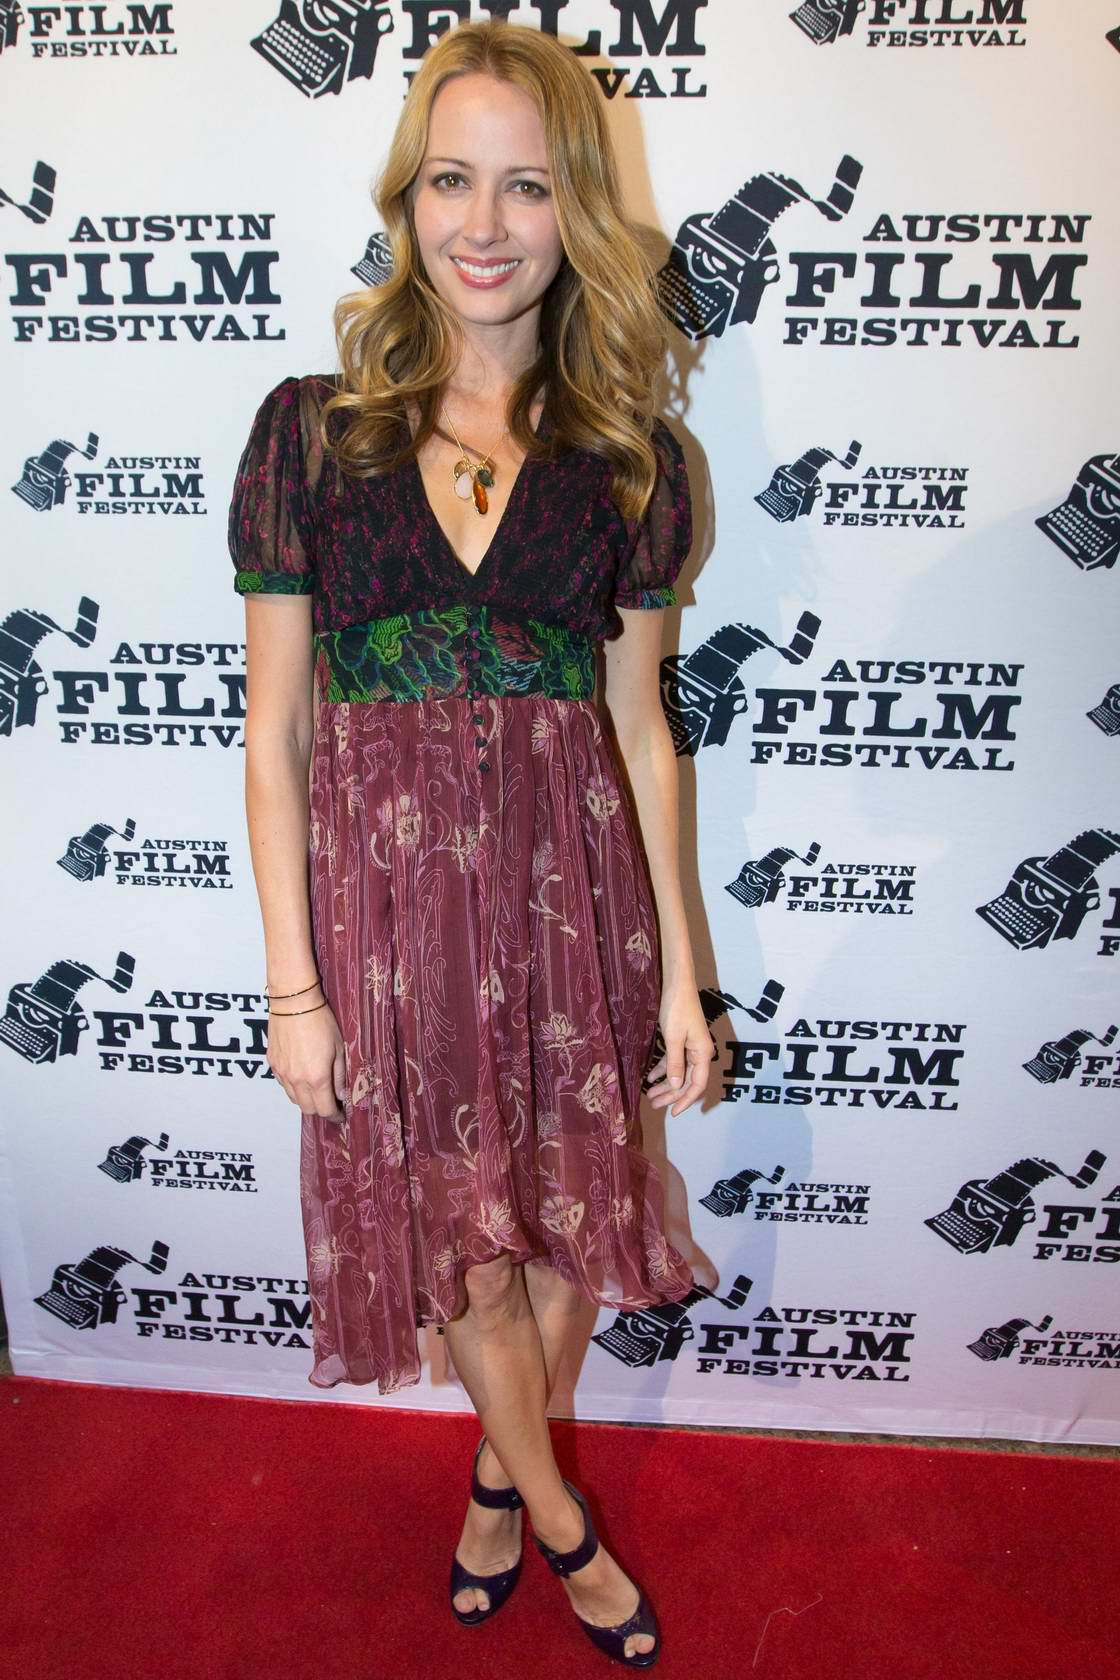 Amy Acker at the premiere of Amanda and Jack Go Glamping during Austin Film Festival in Austin, Texas